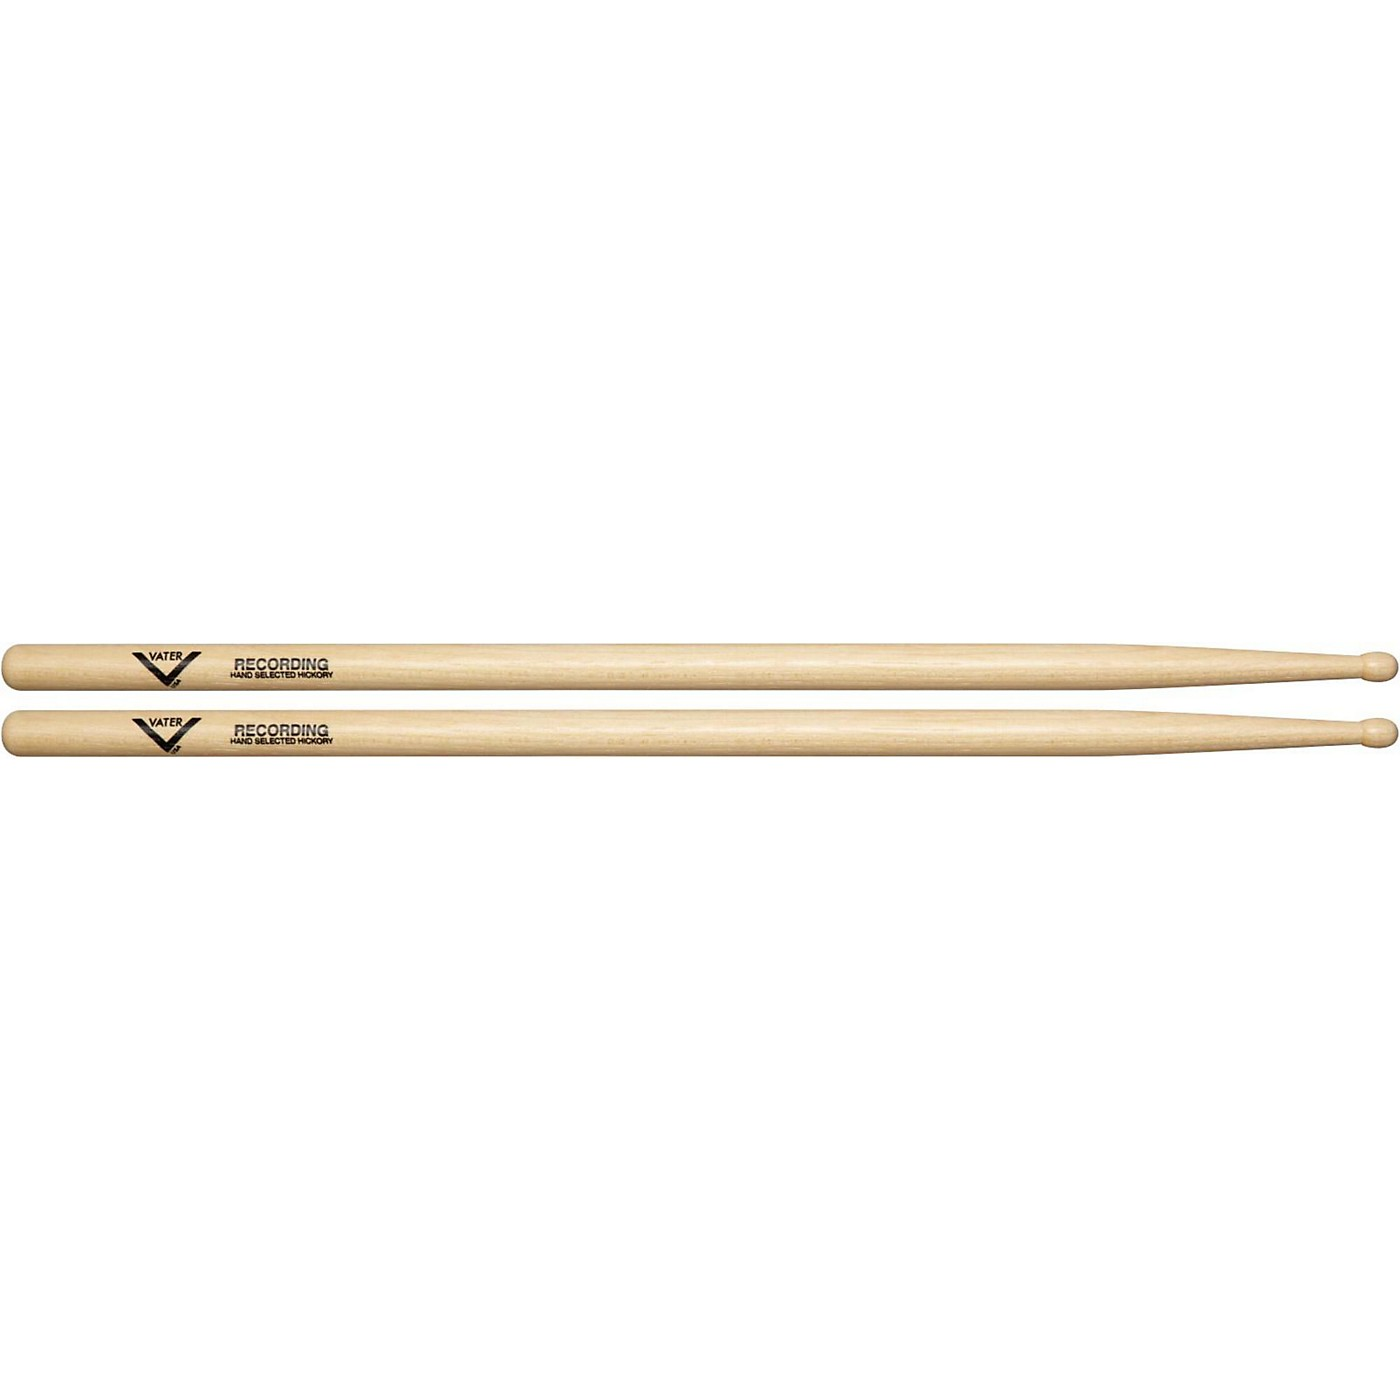 Vater American Hickory Recording Drumsticks thumbnail